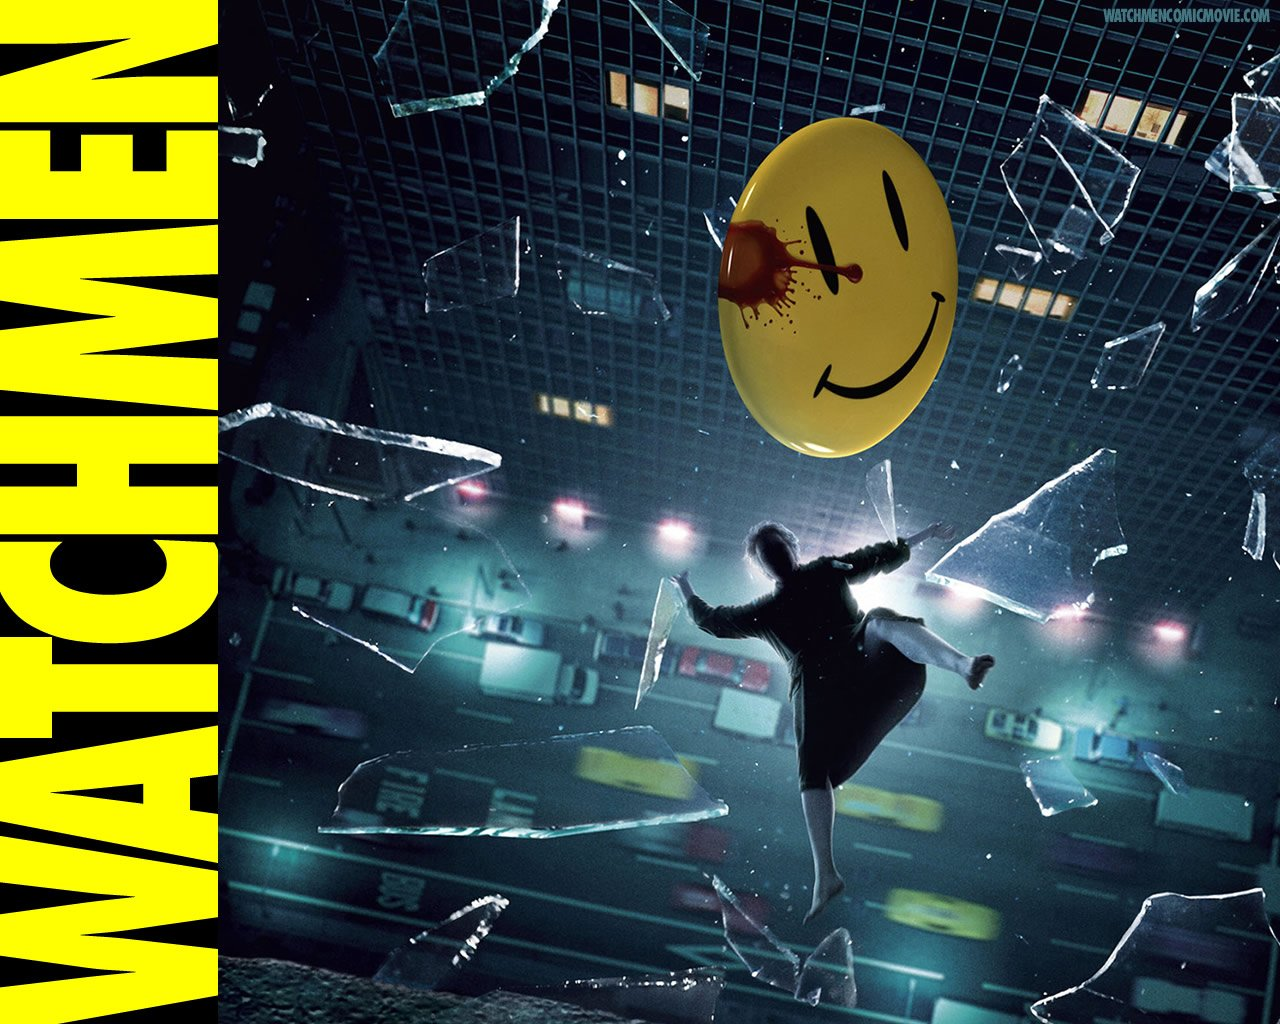 121 Watchmen HD Wallpapers Background Images 1280x1024